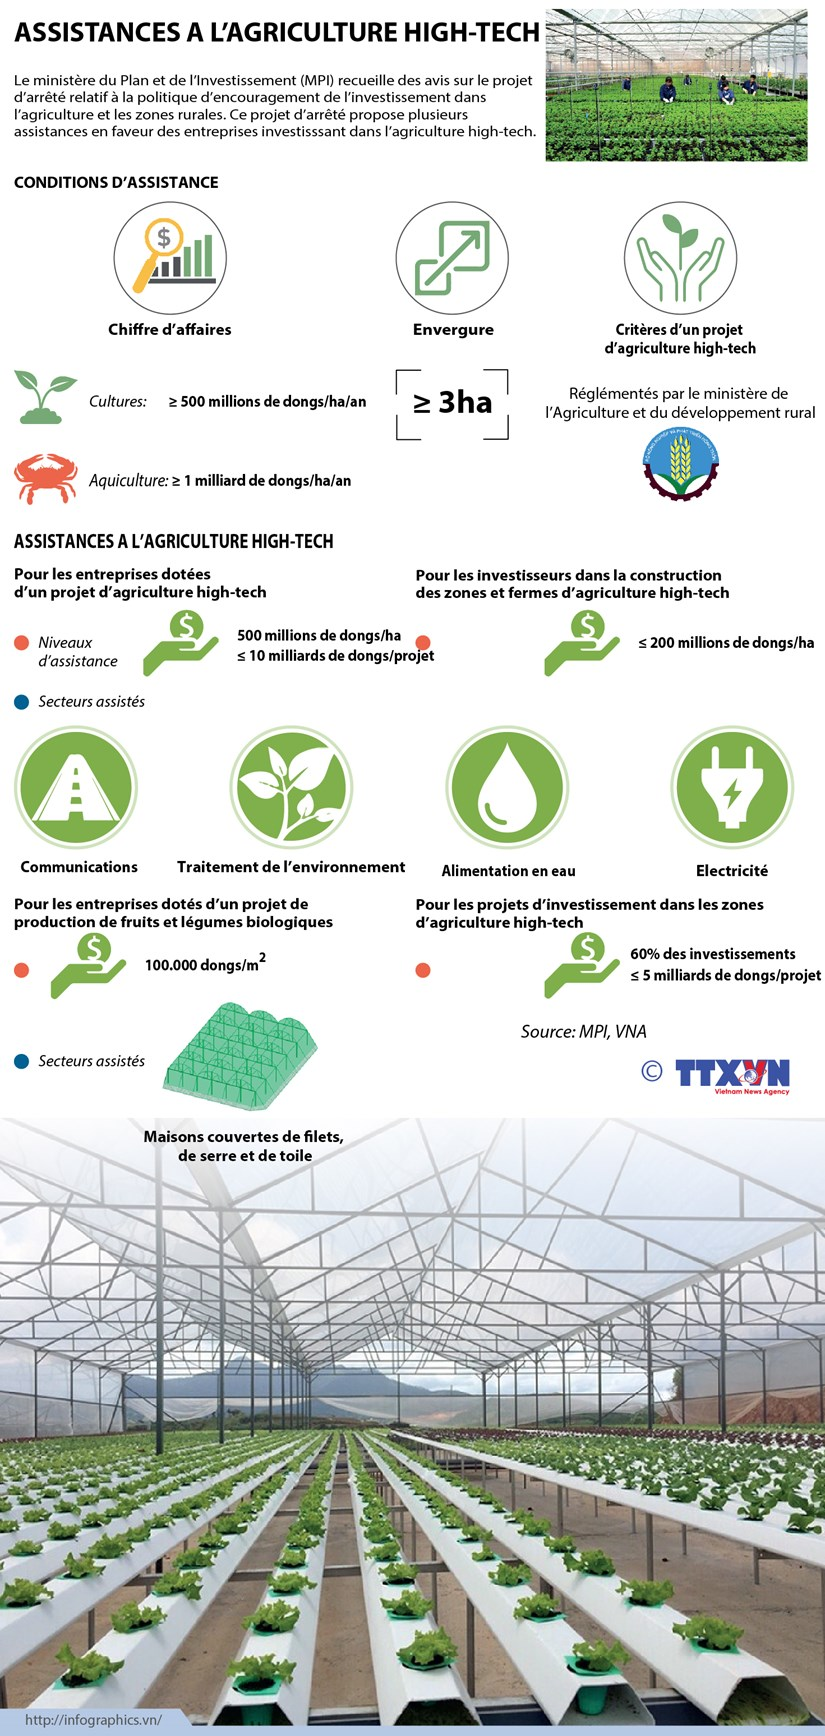 Assistances a l'agriculture high-tech hinh anh 1